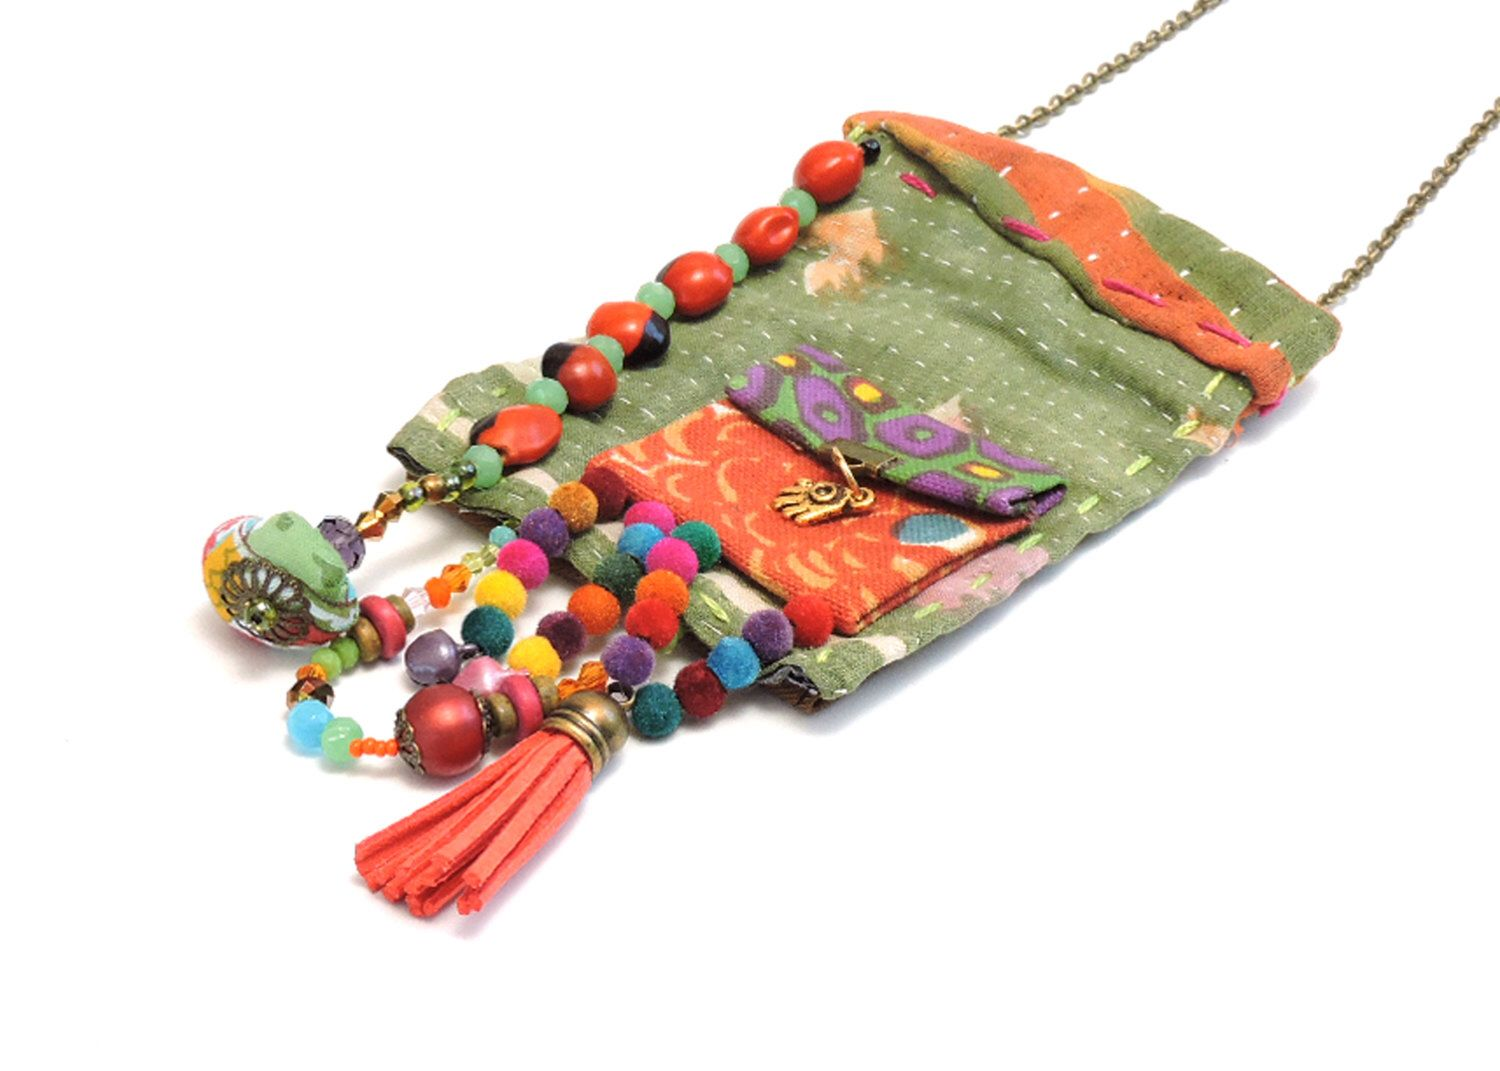 necklace textile elegant handmade en fabric com jewelry woolen unusual cute product madeheart accessory